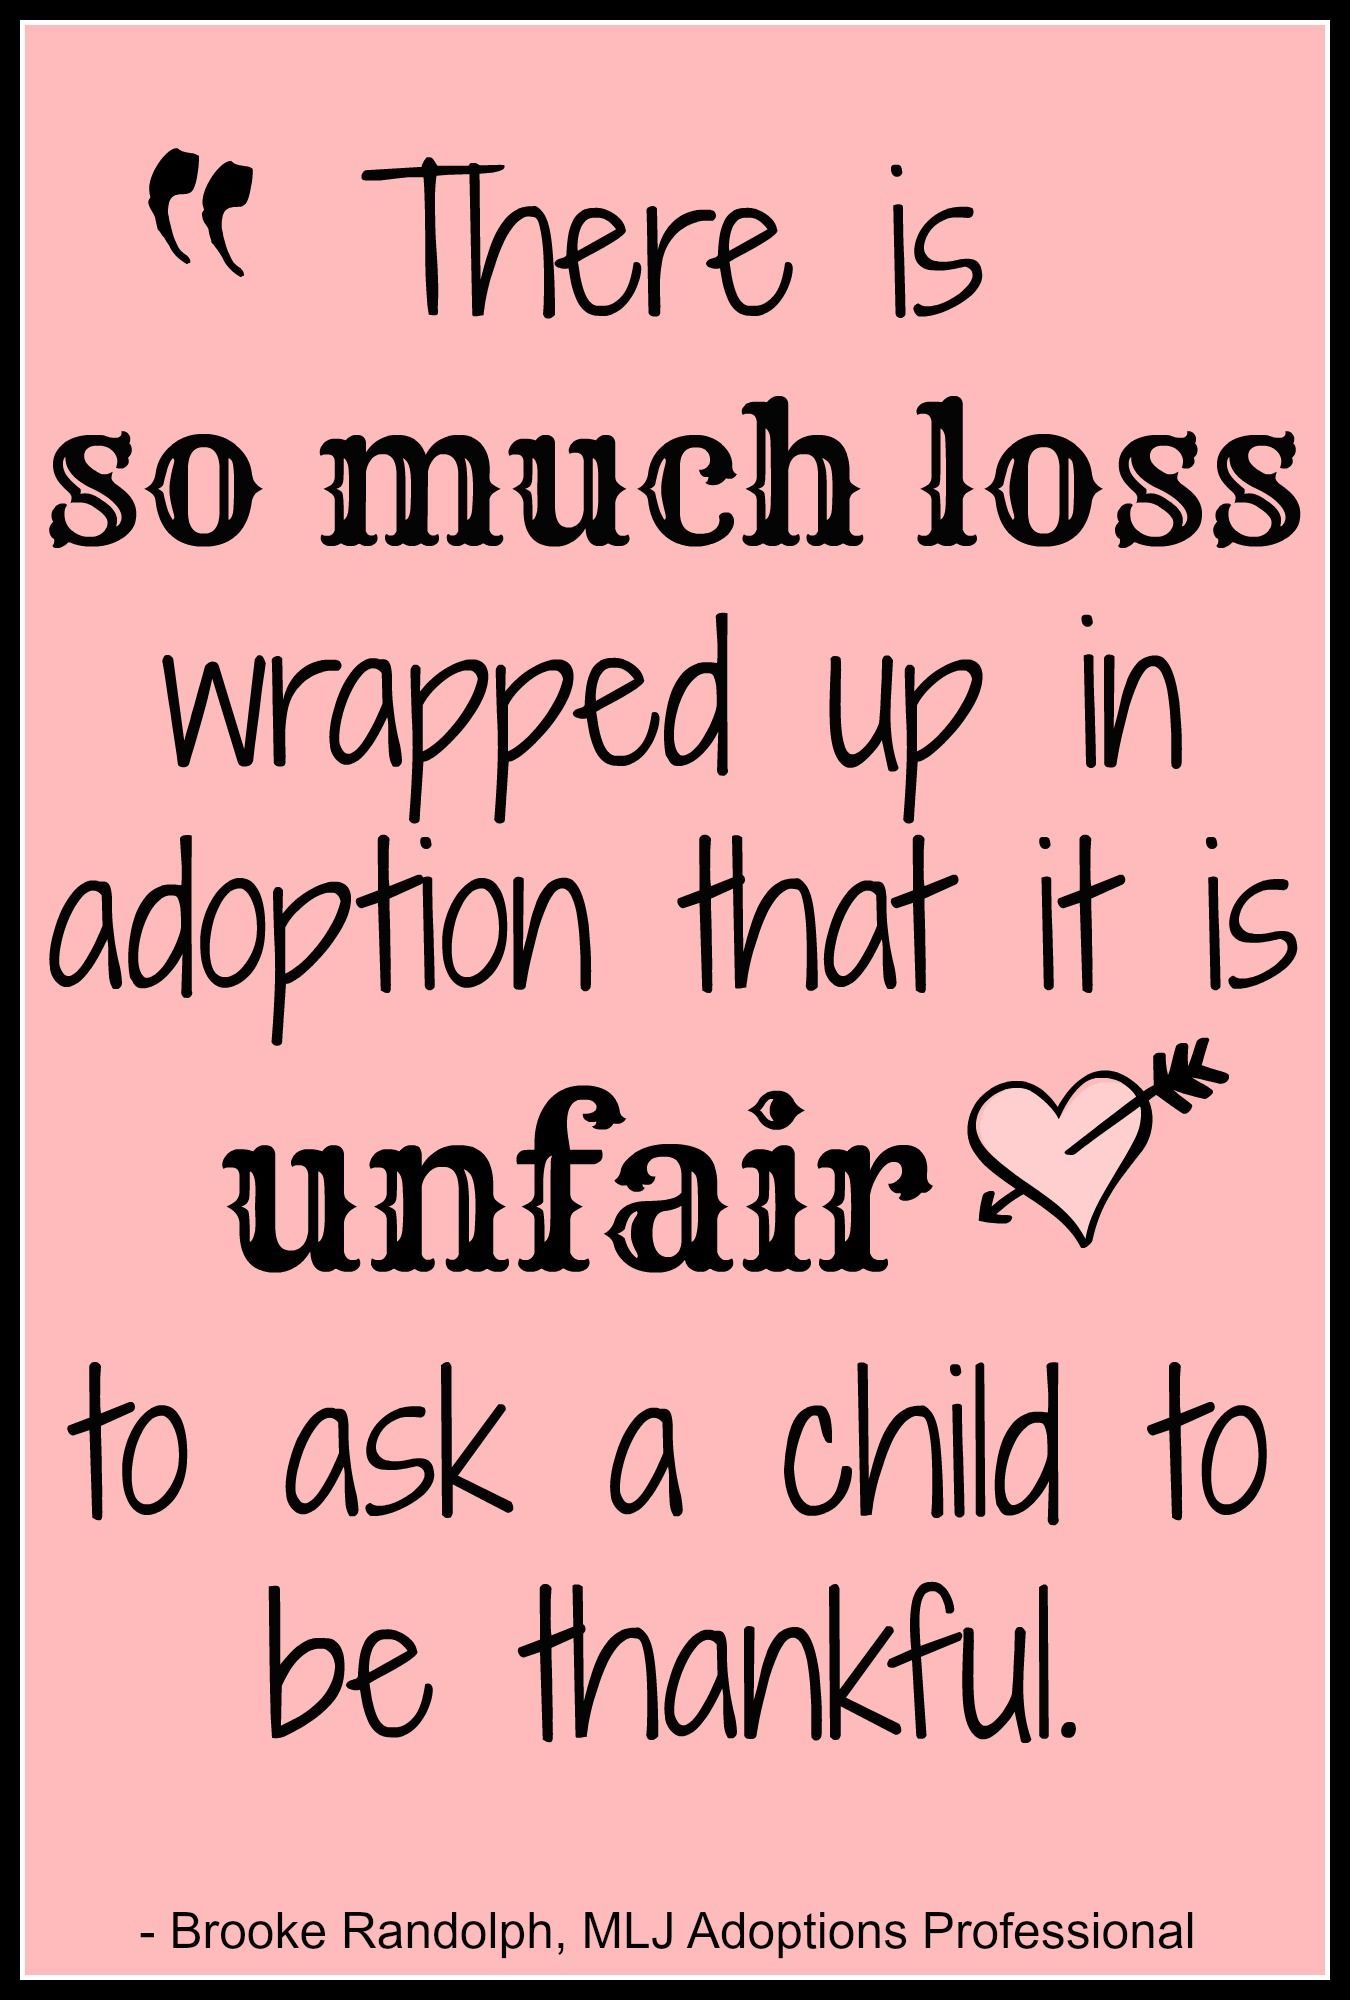 Quotes About Adoption There Is So Much Loss Wrapped Up In Adoption That It Is Unfair To